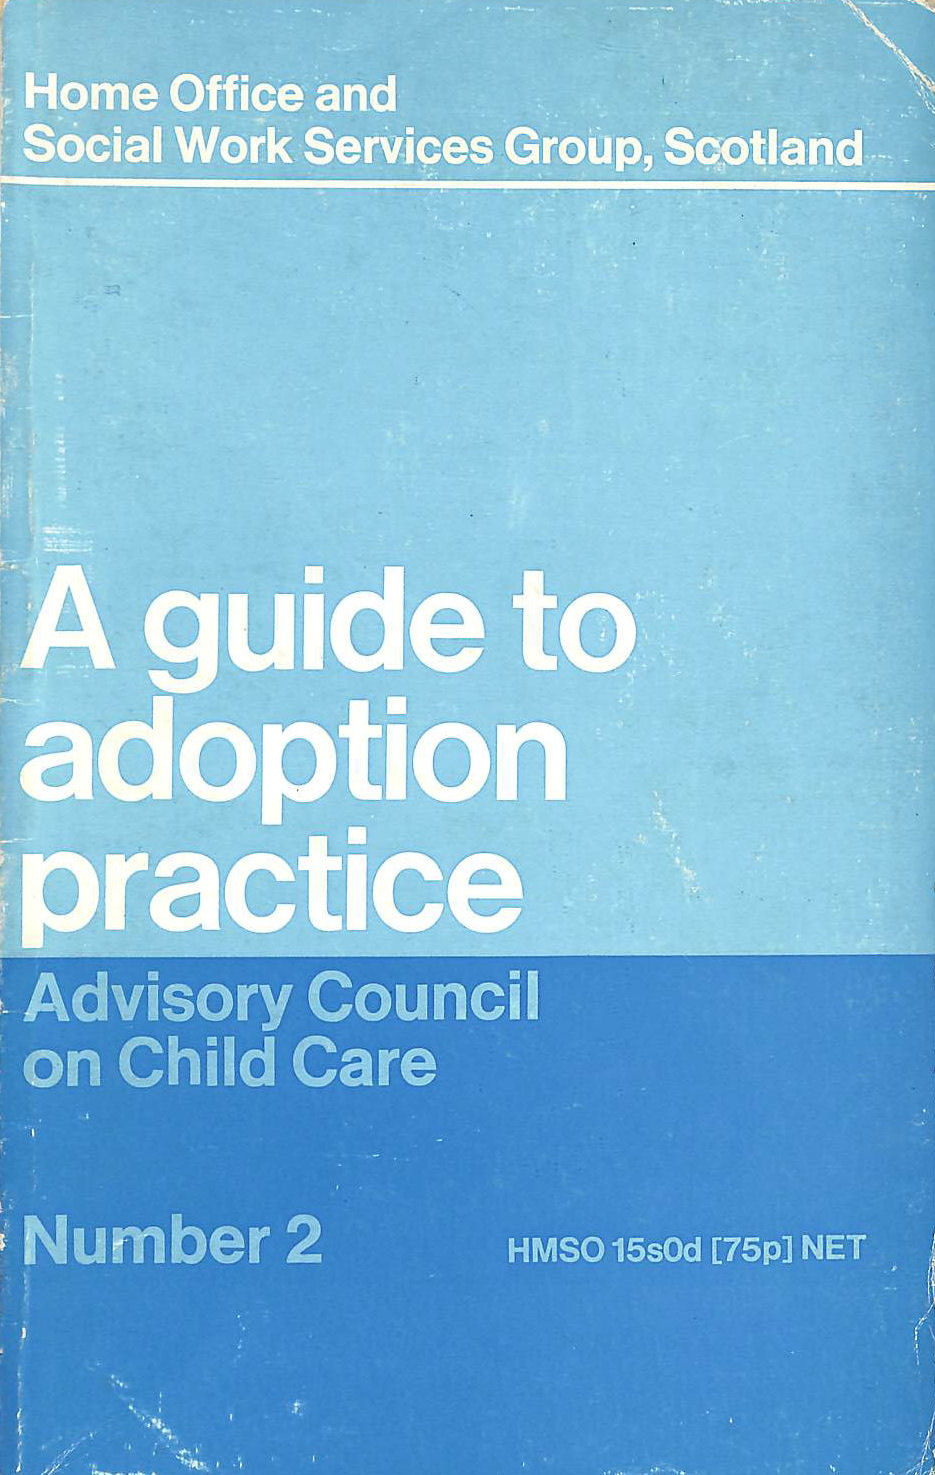 Image for A guide to adoption practice (Advisory Council on Child Care [publication])